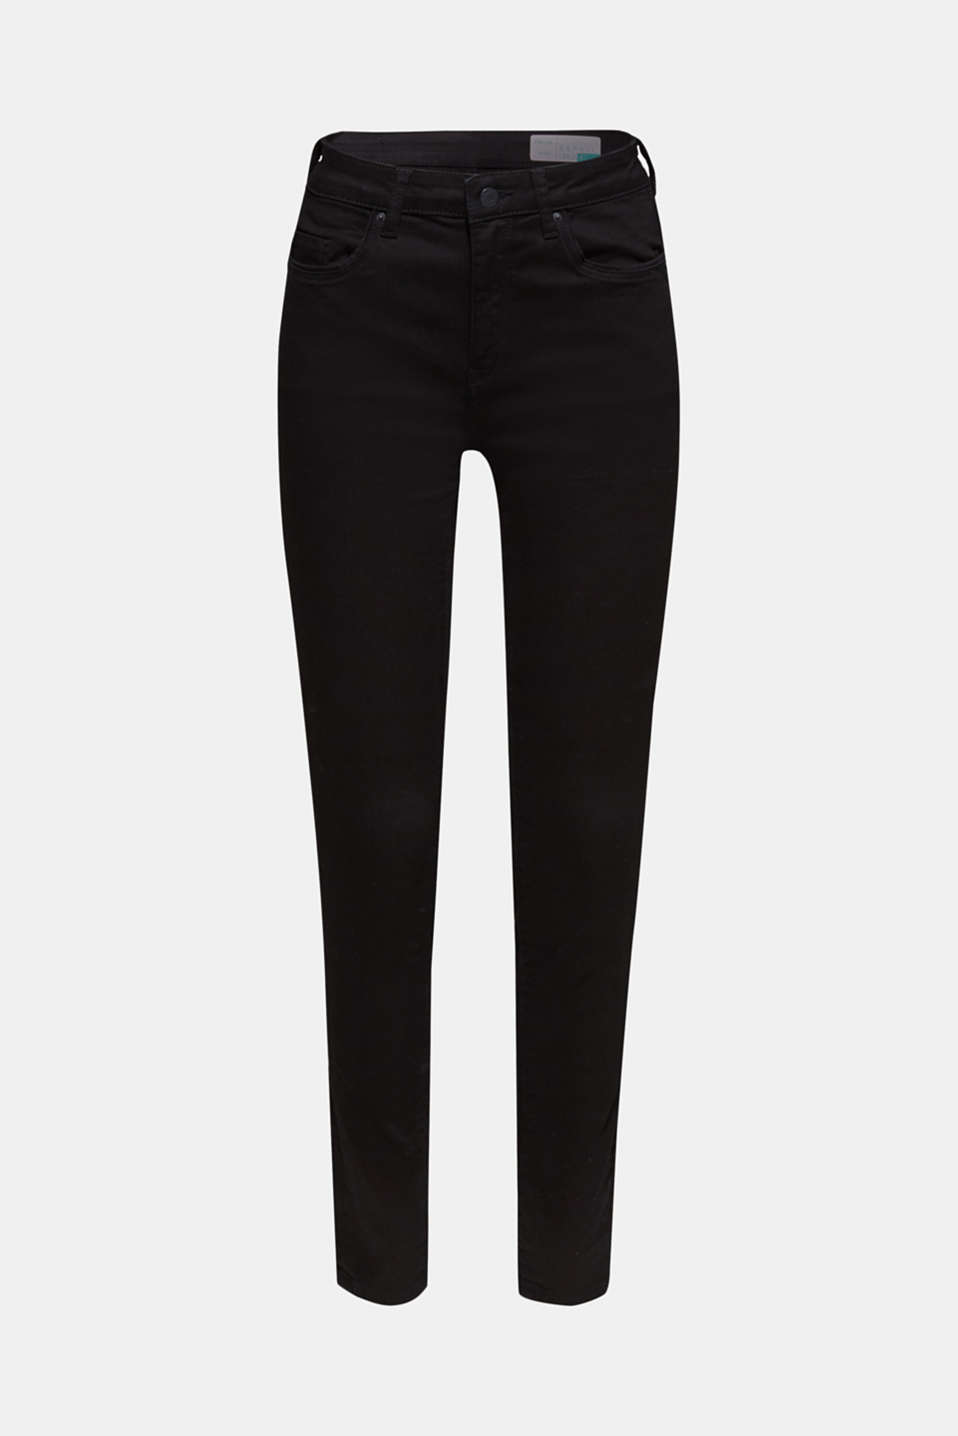 Esprit - Jeans stretch in denim nero